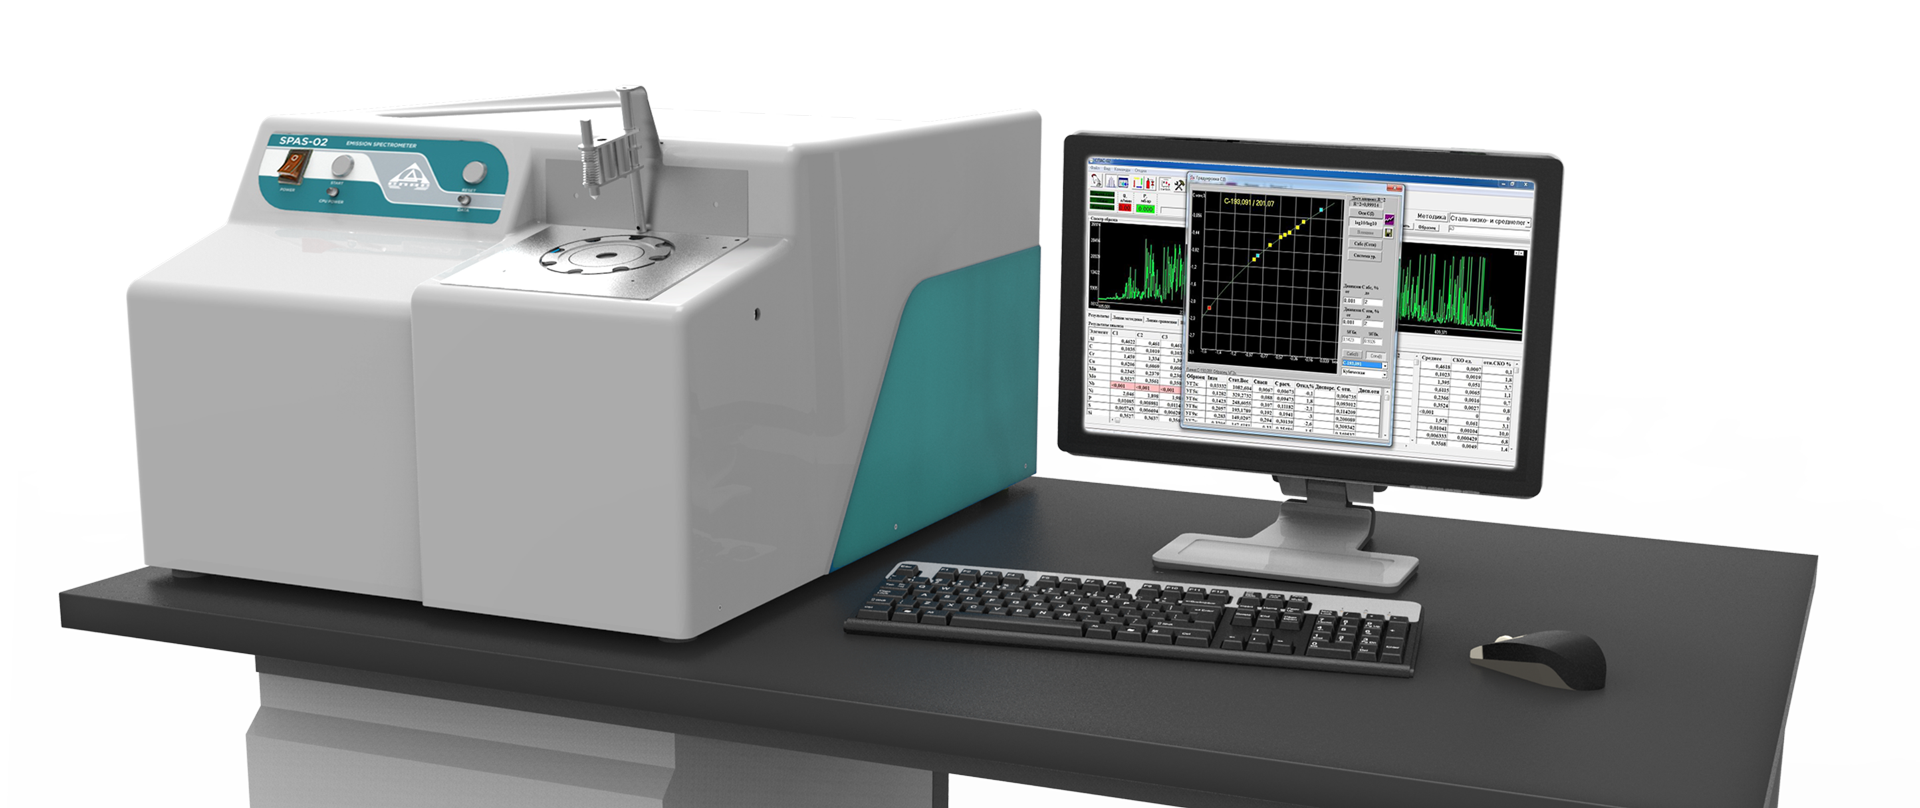 Optical emission spectrometer (OES) SPAS-02 for metal analysis